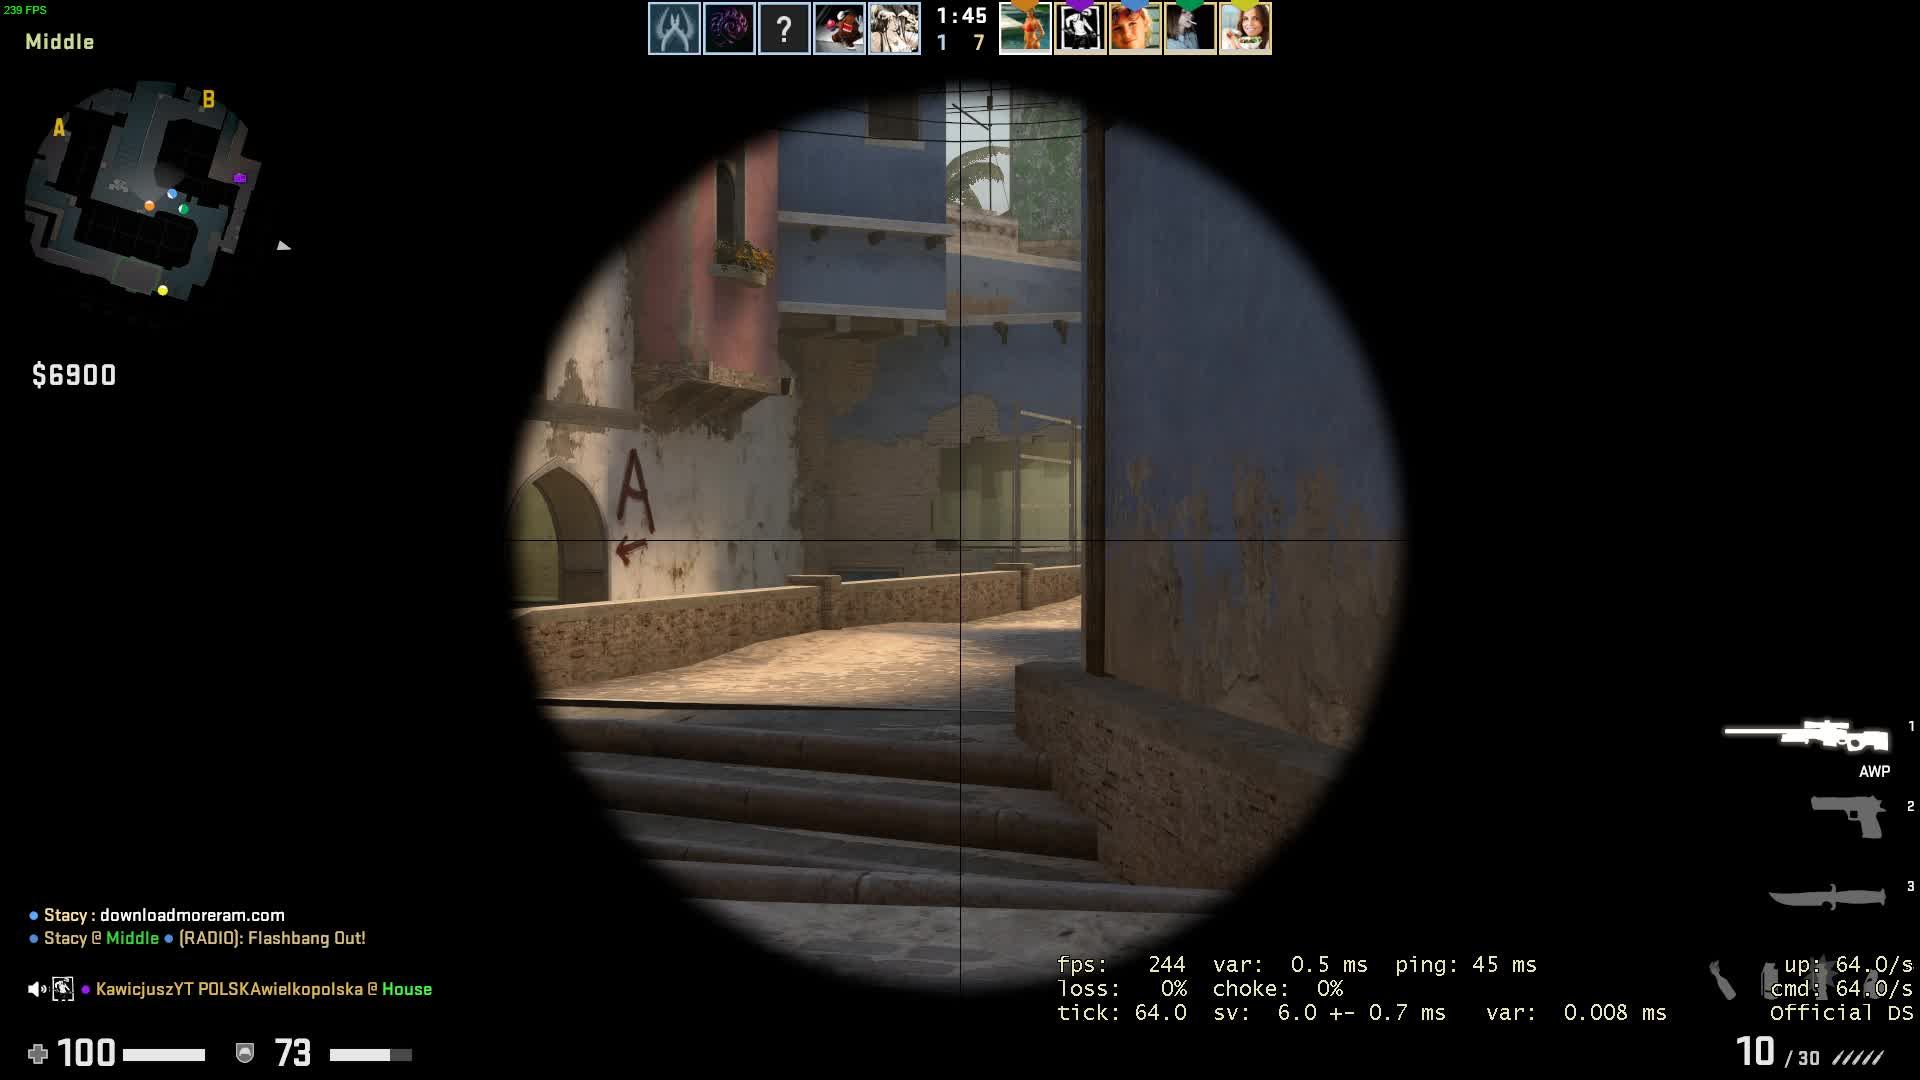 CS:GO, GlobalOffensive, vlc-record-2018-07-10-16h43m54s-Counter-strike Global Offensive 2018.07.10 - 14.31.49.02.DVR.mp4- GIFs